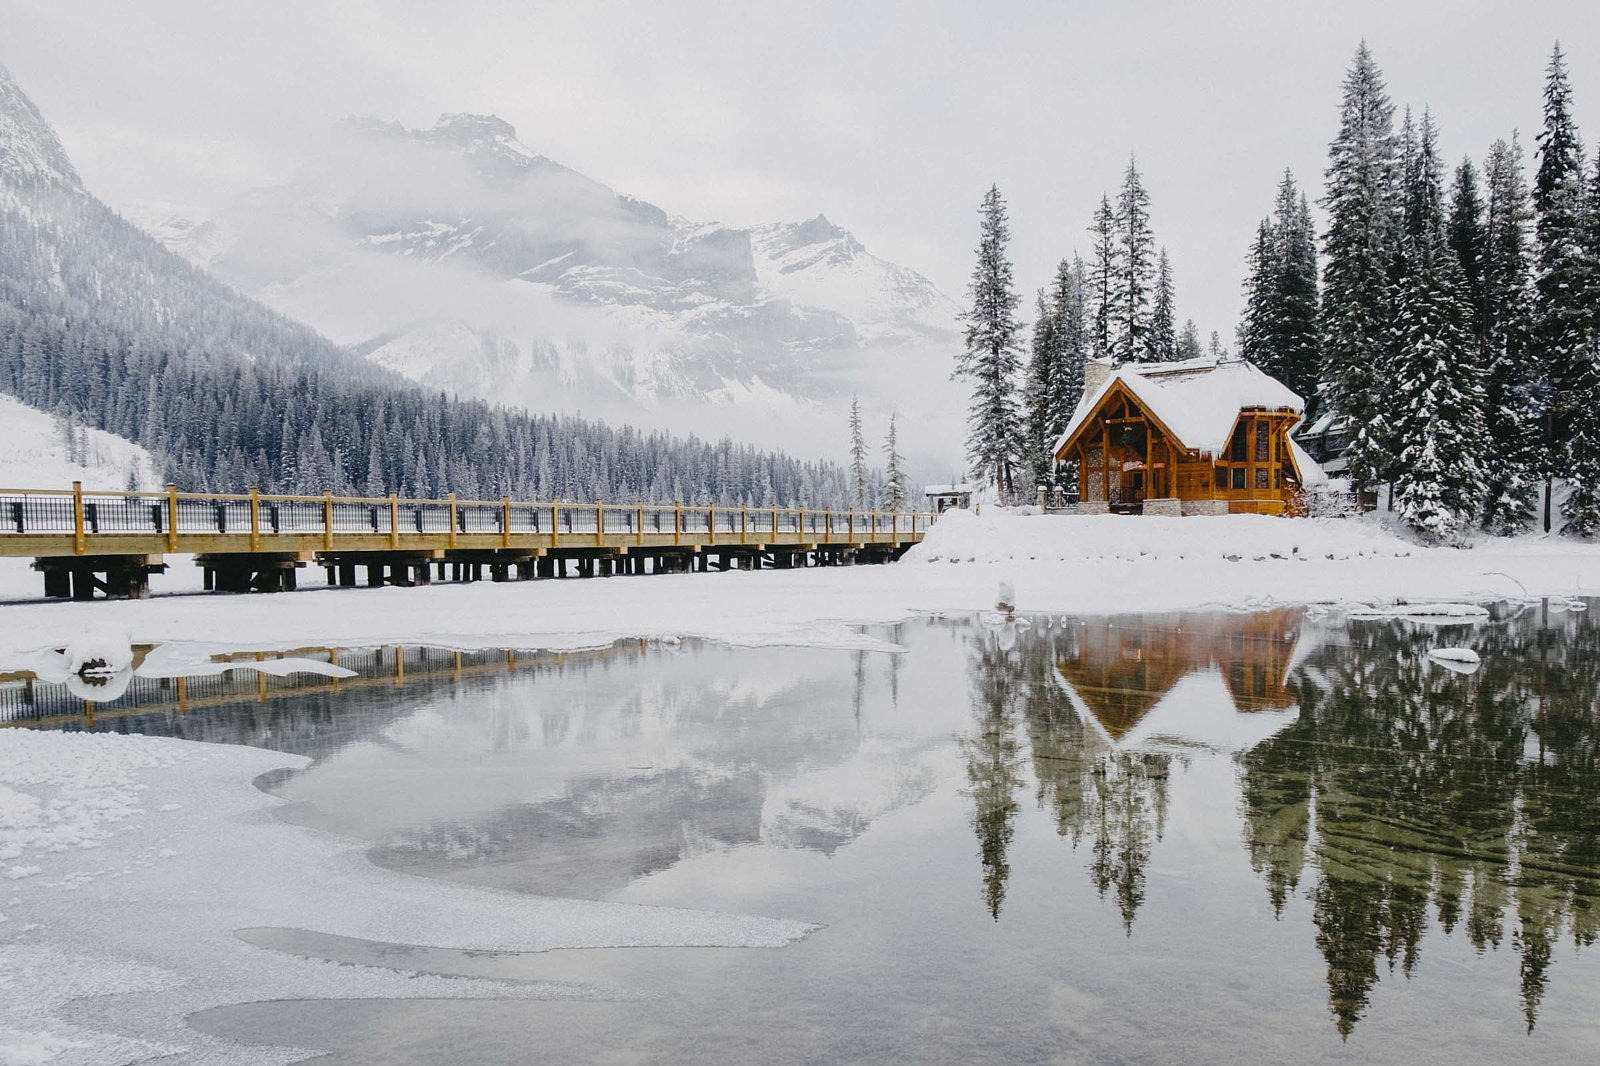 Through Ice, Rock, and Snow: Photos from a Winter Roadtrip to the Canadian Rockies - 500px